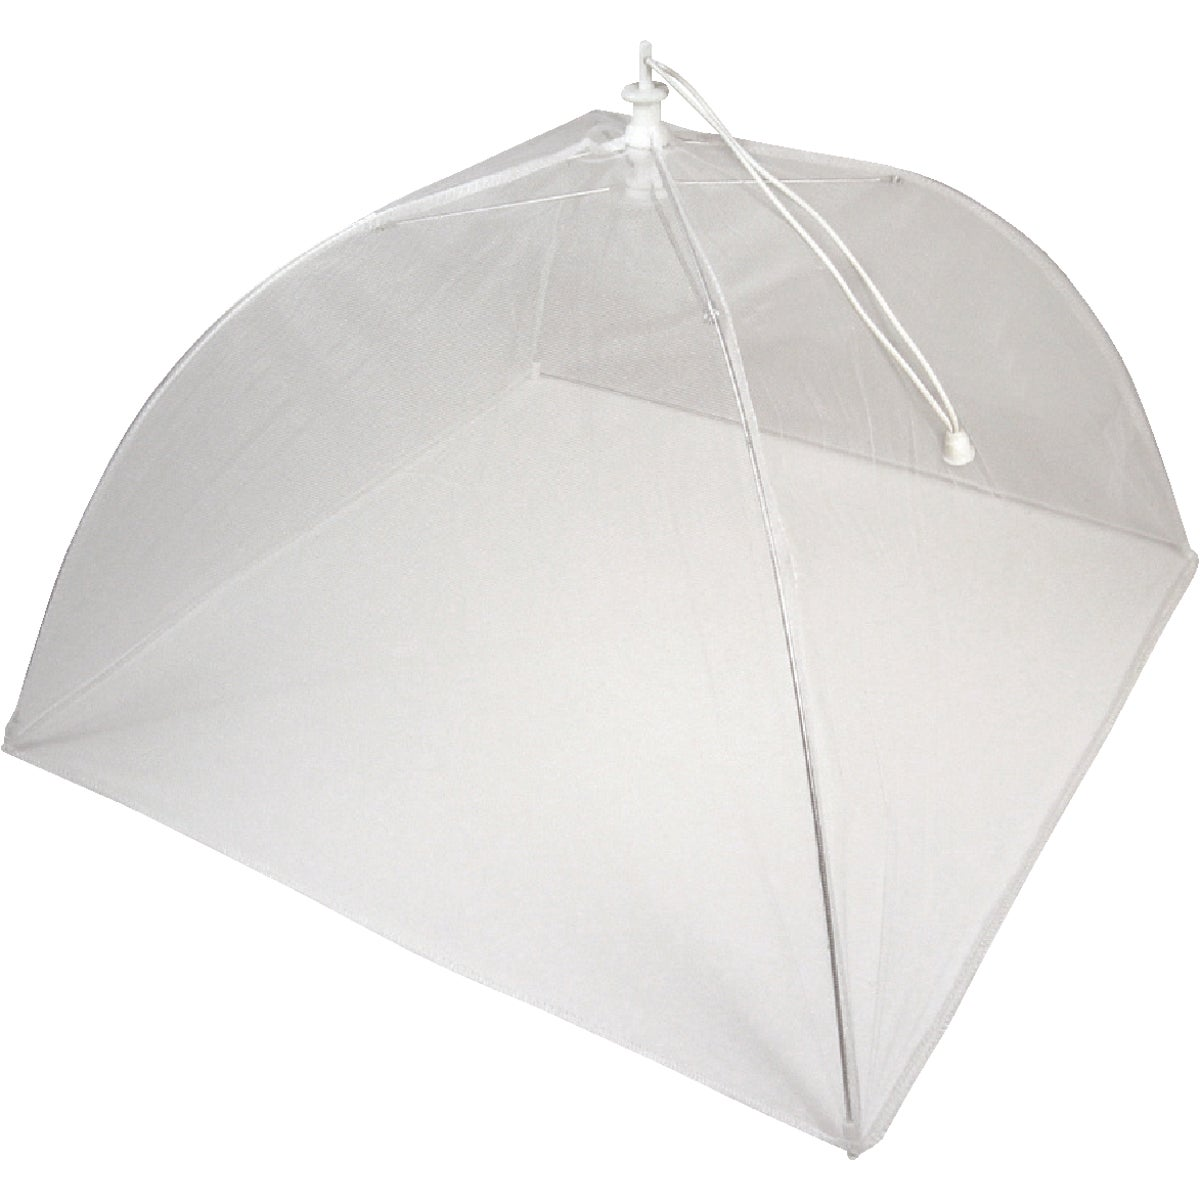 "17"" FOOD UMBRELLA - 80100 by Onward Multi Corp Y1"